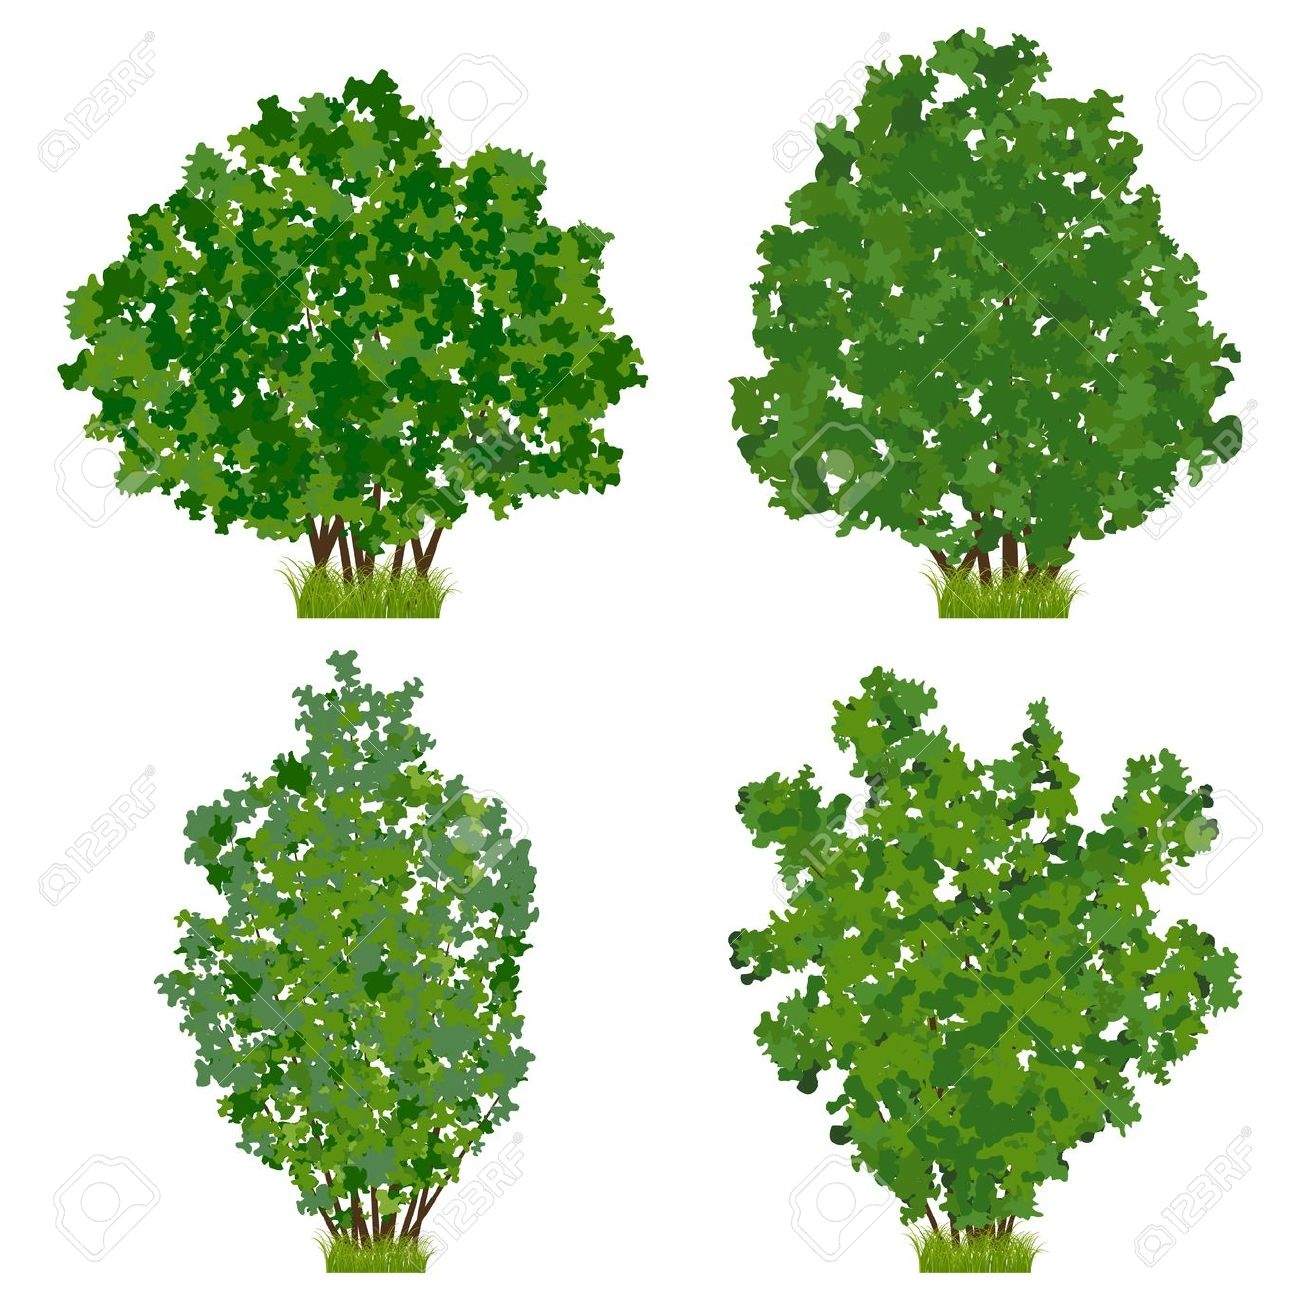 Shrub clipart shrubbery #14